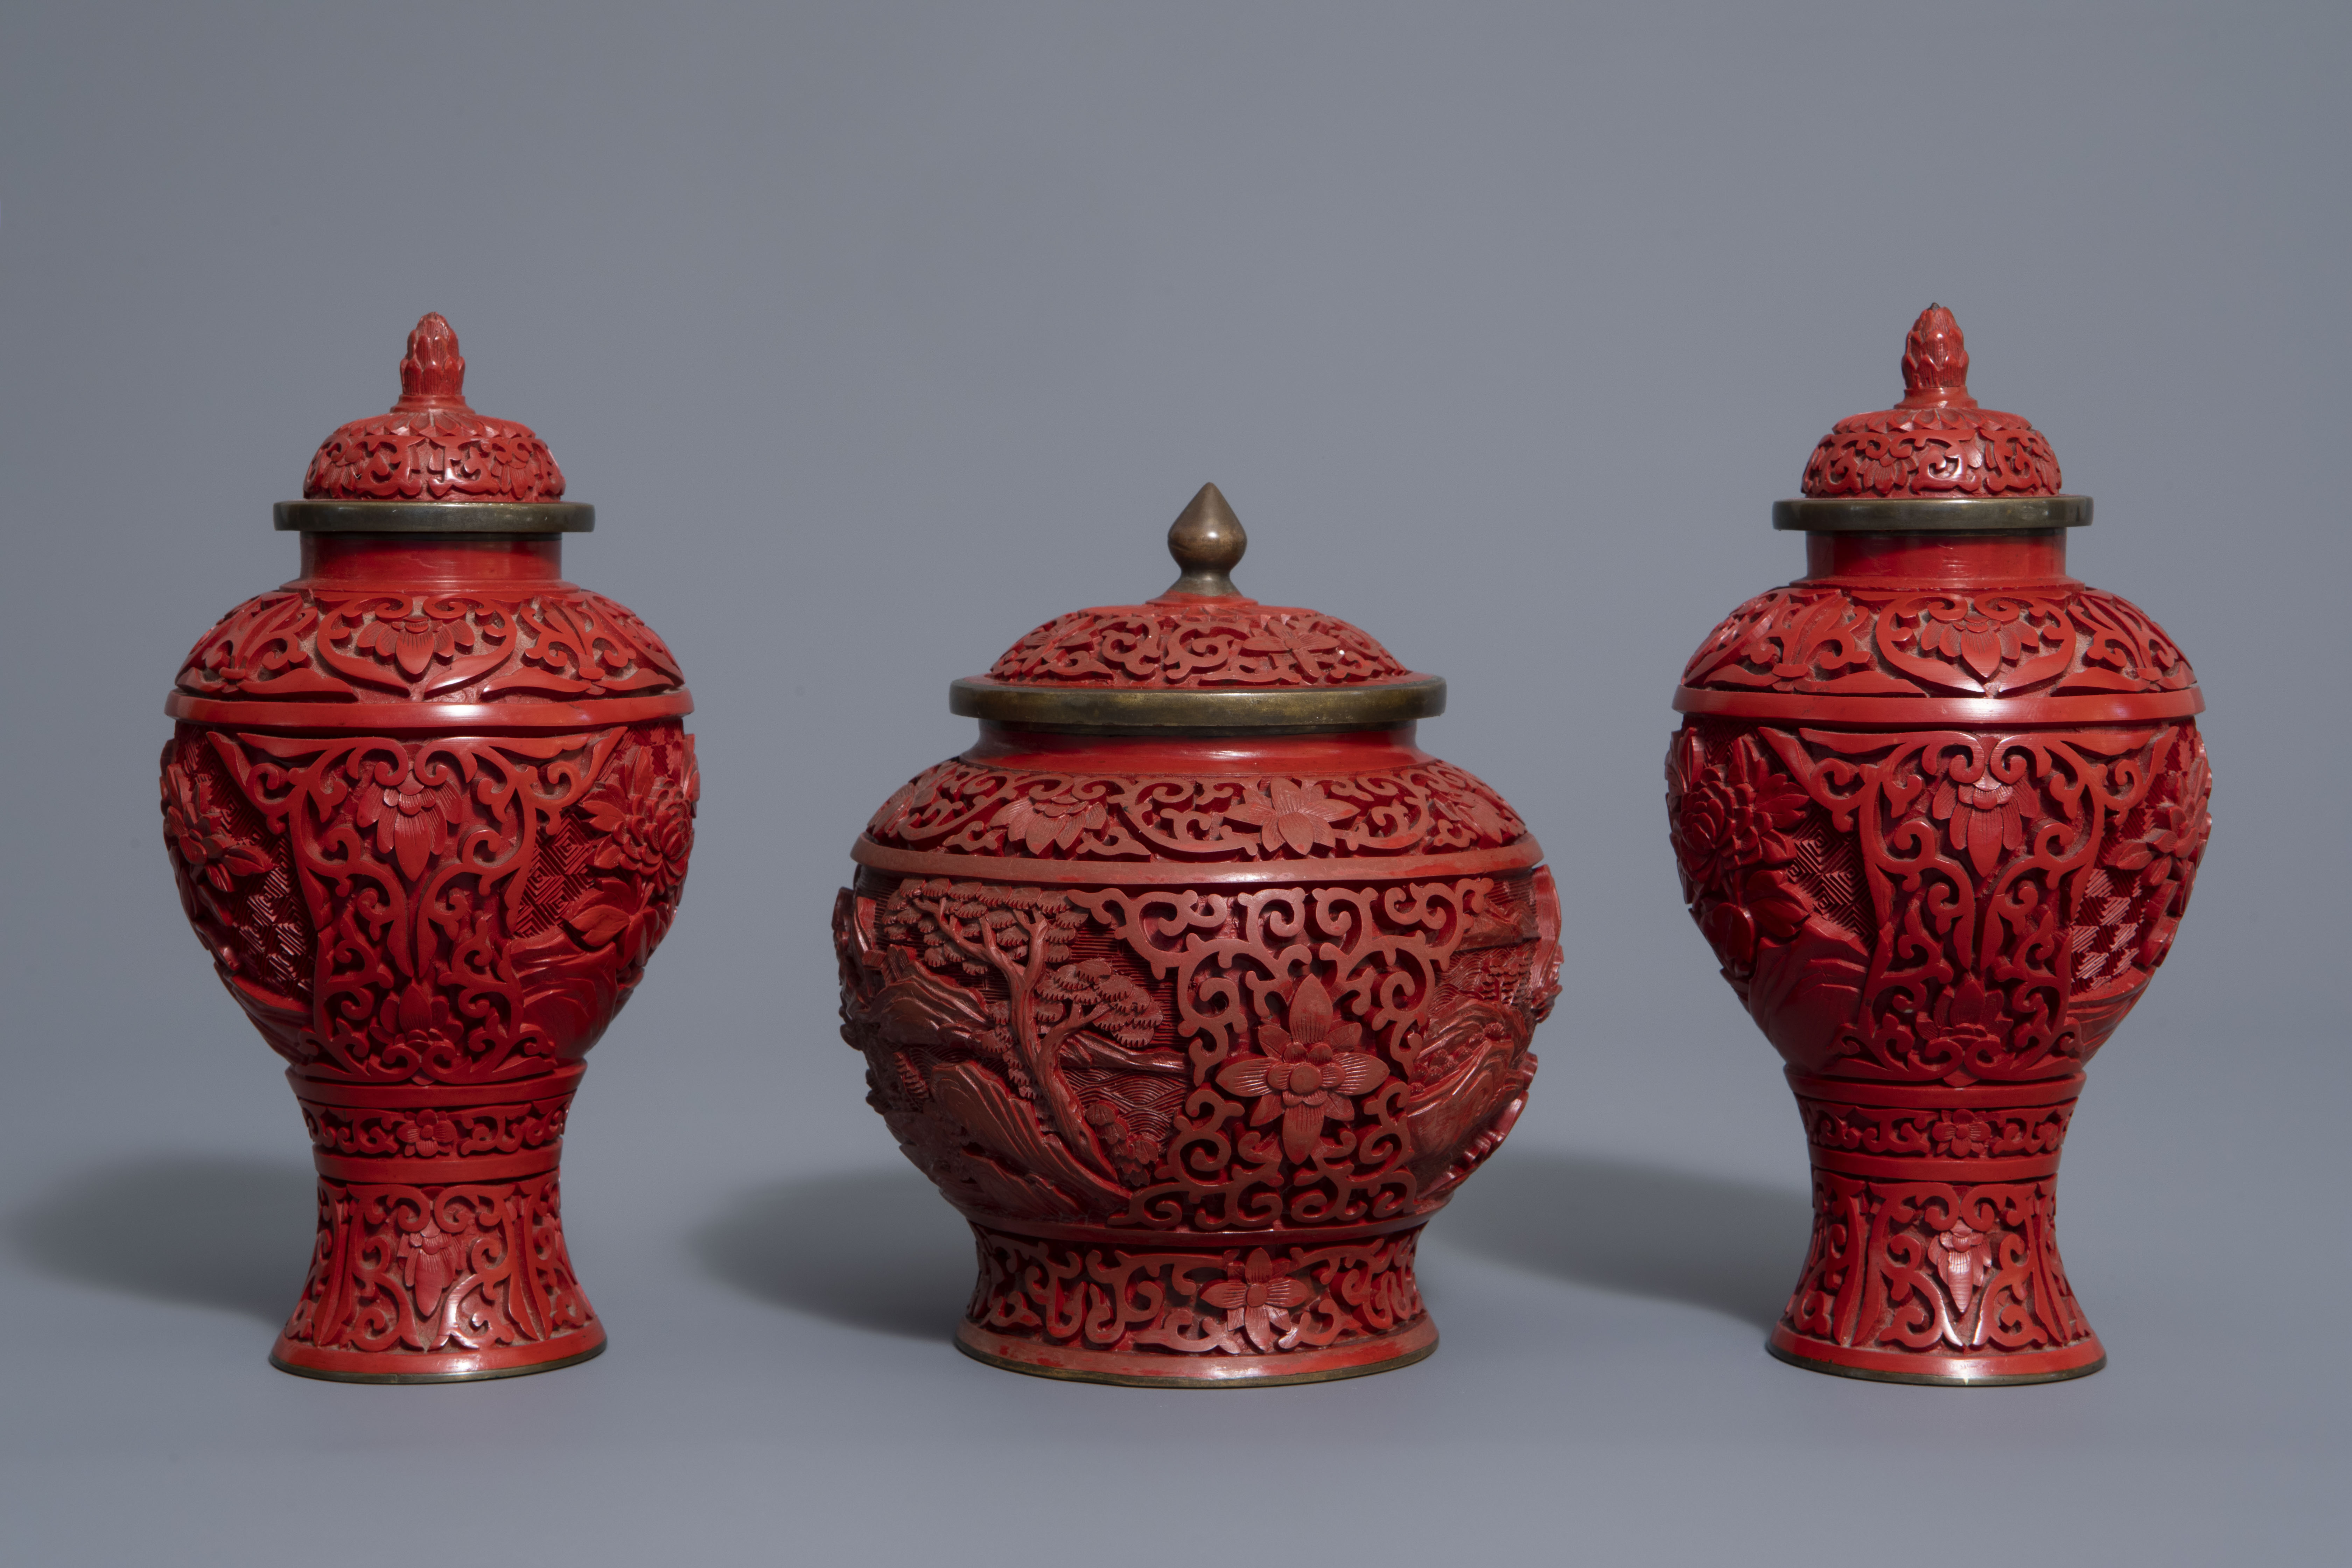 A Chinese tea block, cloisonné teapot, wall vase, bamboo brush pot & 3 red lacquer vases, 20th C. - Image 3 of 16